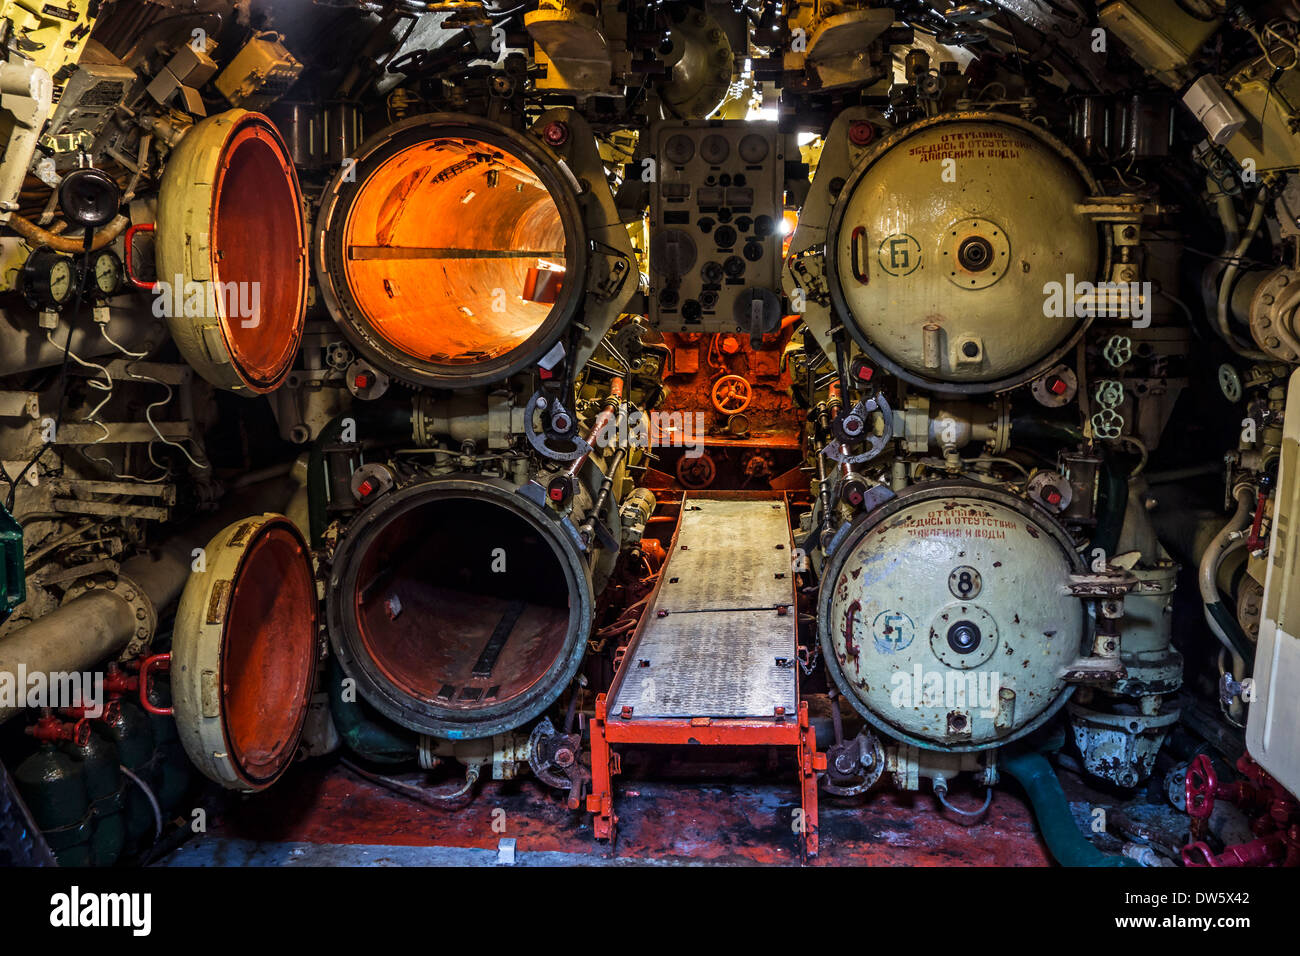 Opened torpedo tubes in aft torpedo room inside Russian diesel-electric submarine B-143 / U-480 Foxtrot type 641 Stock Photo